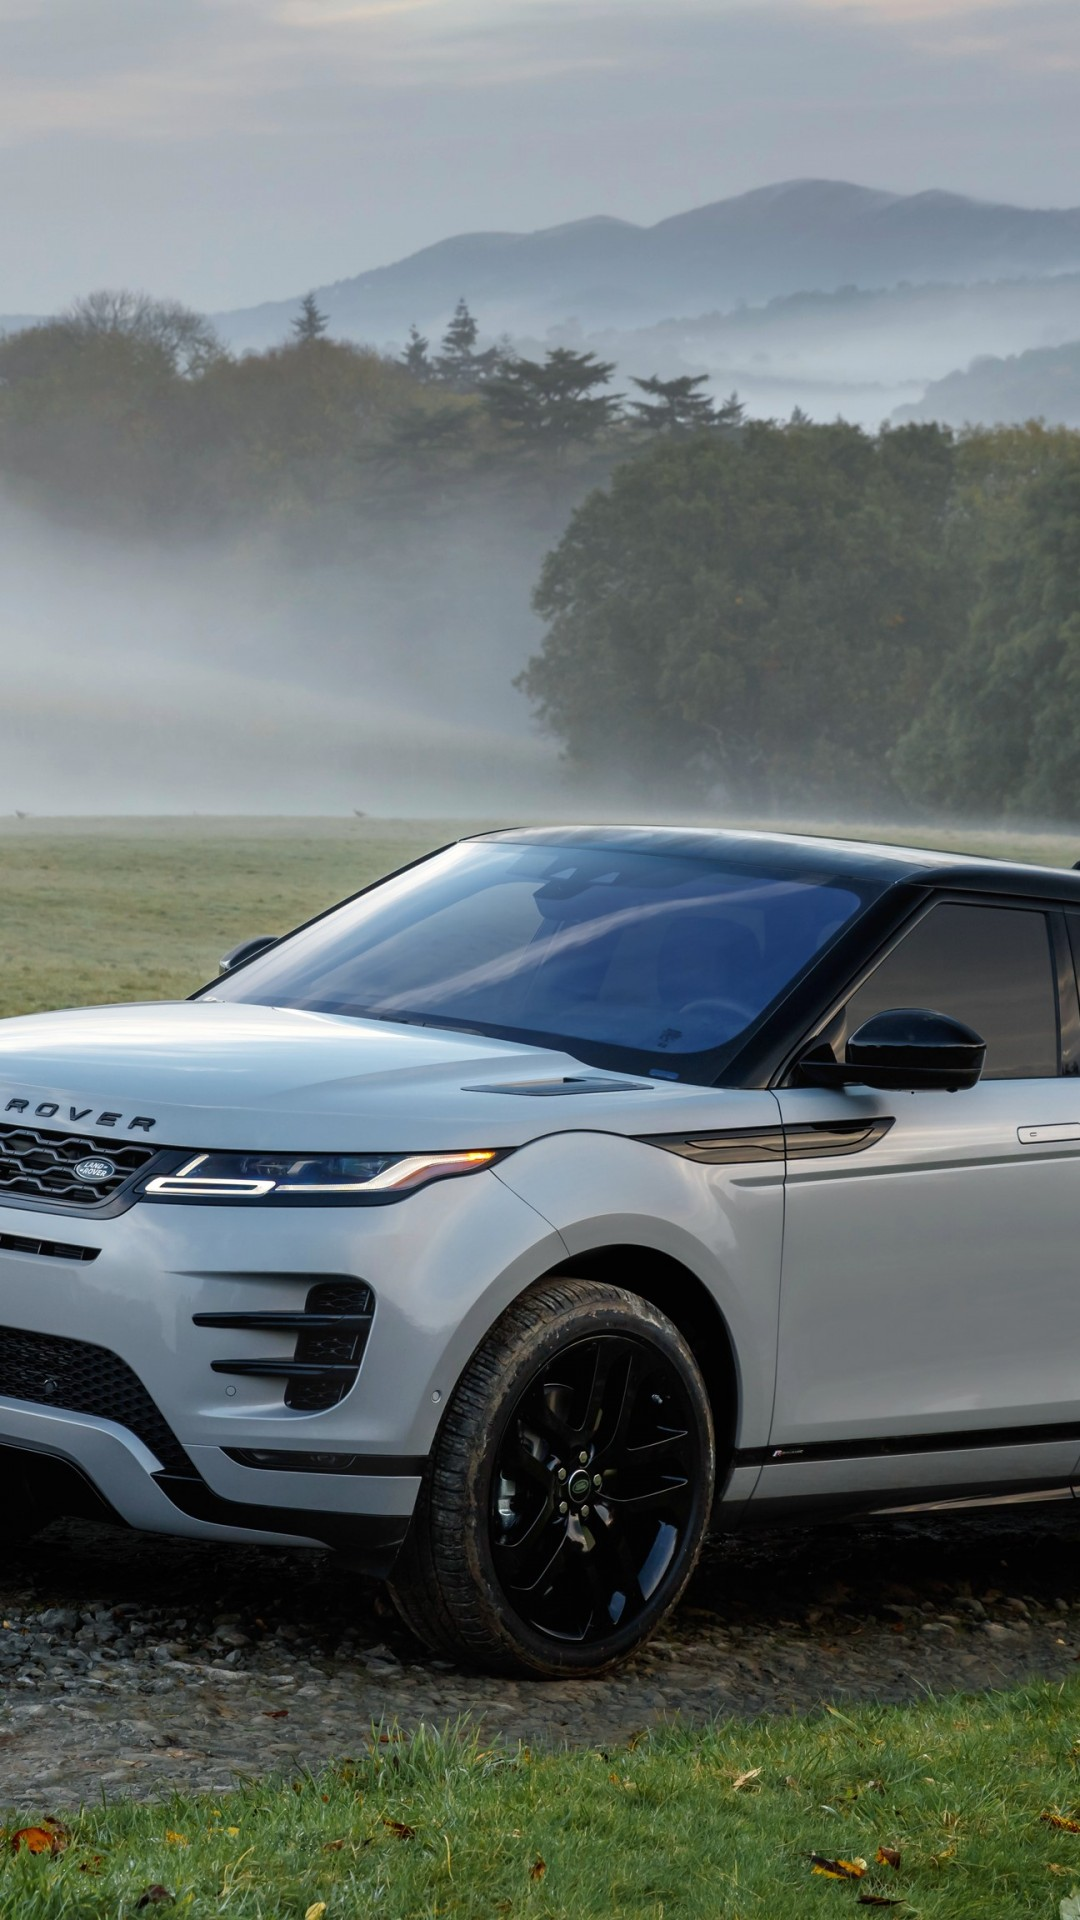 Wallpaper Range Rover Evoque Suv 2019 Cars 4k Cars